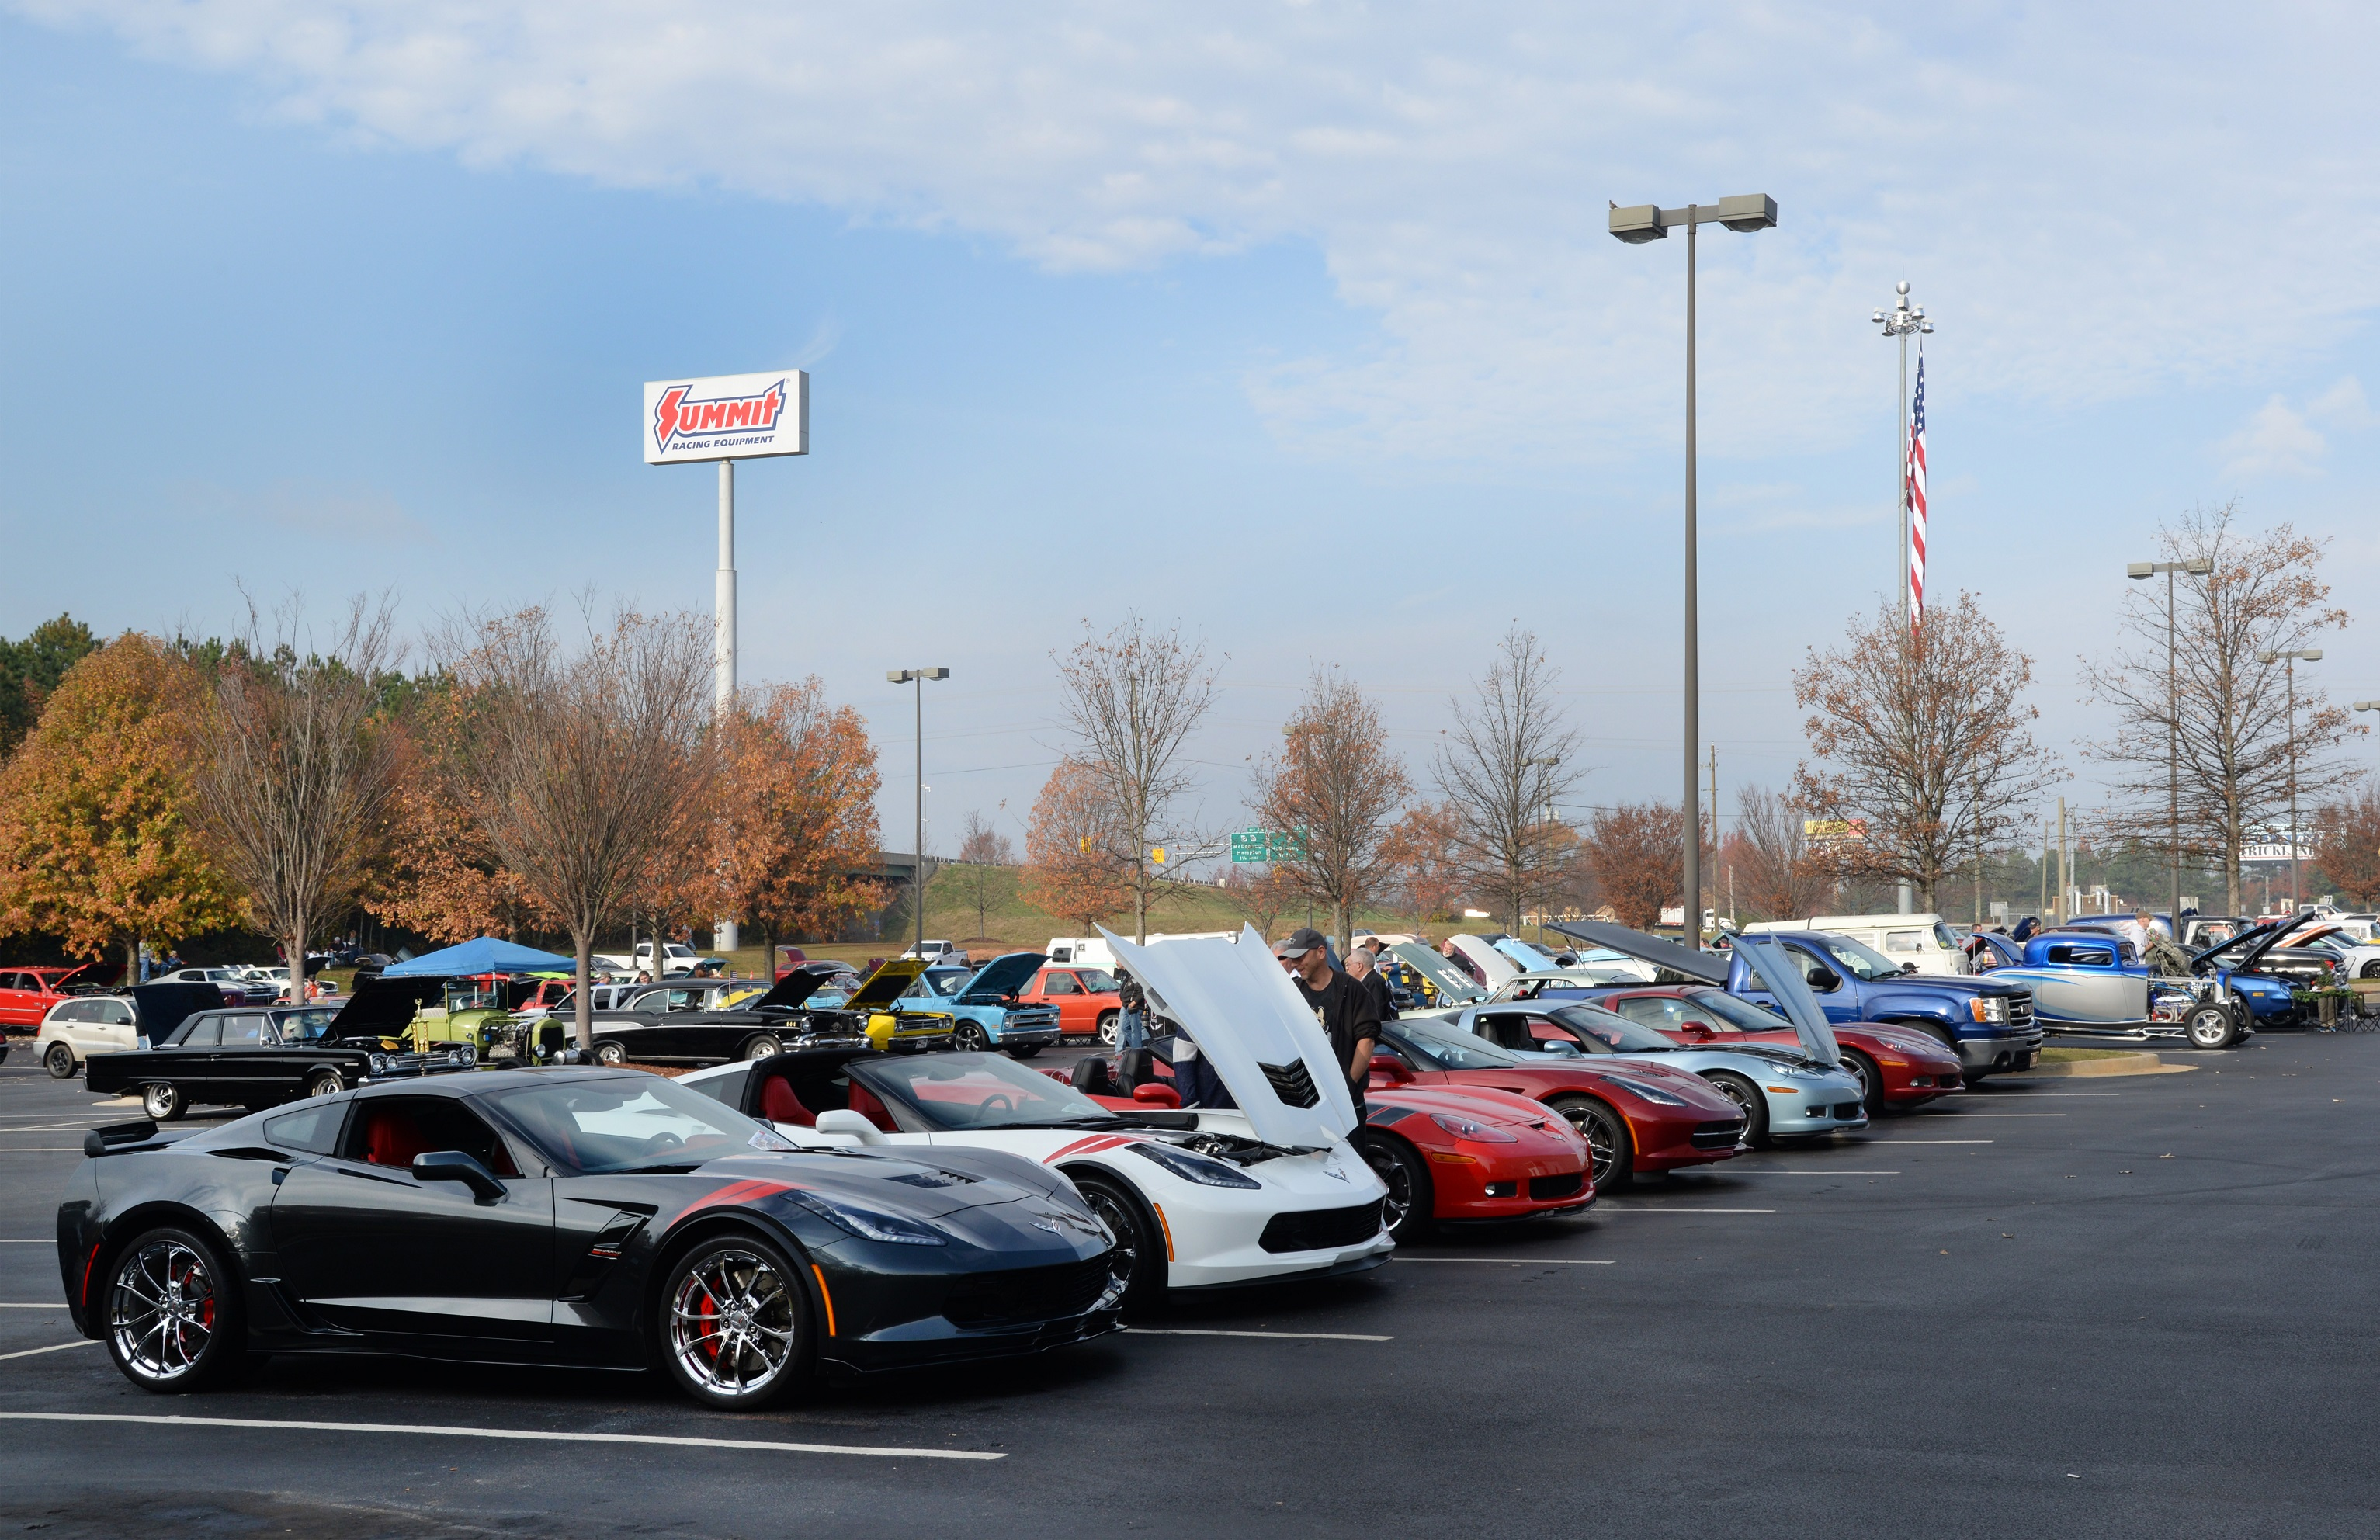 Toys for Tots Cruise In Corvettes